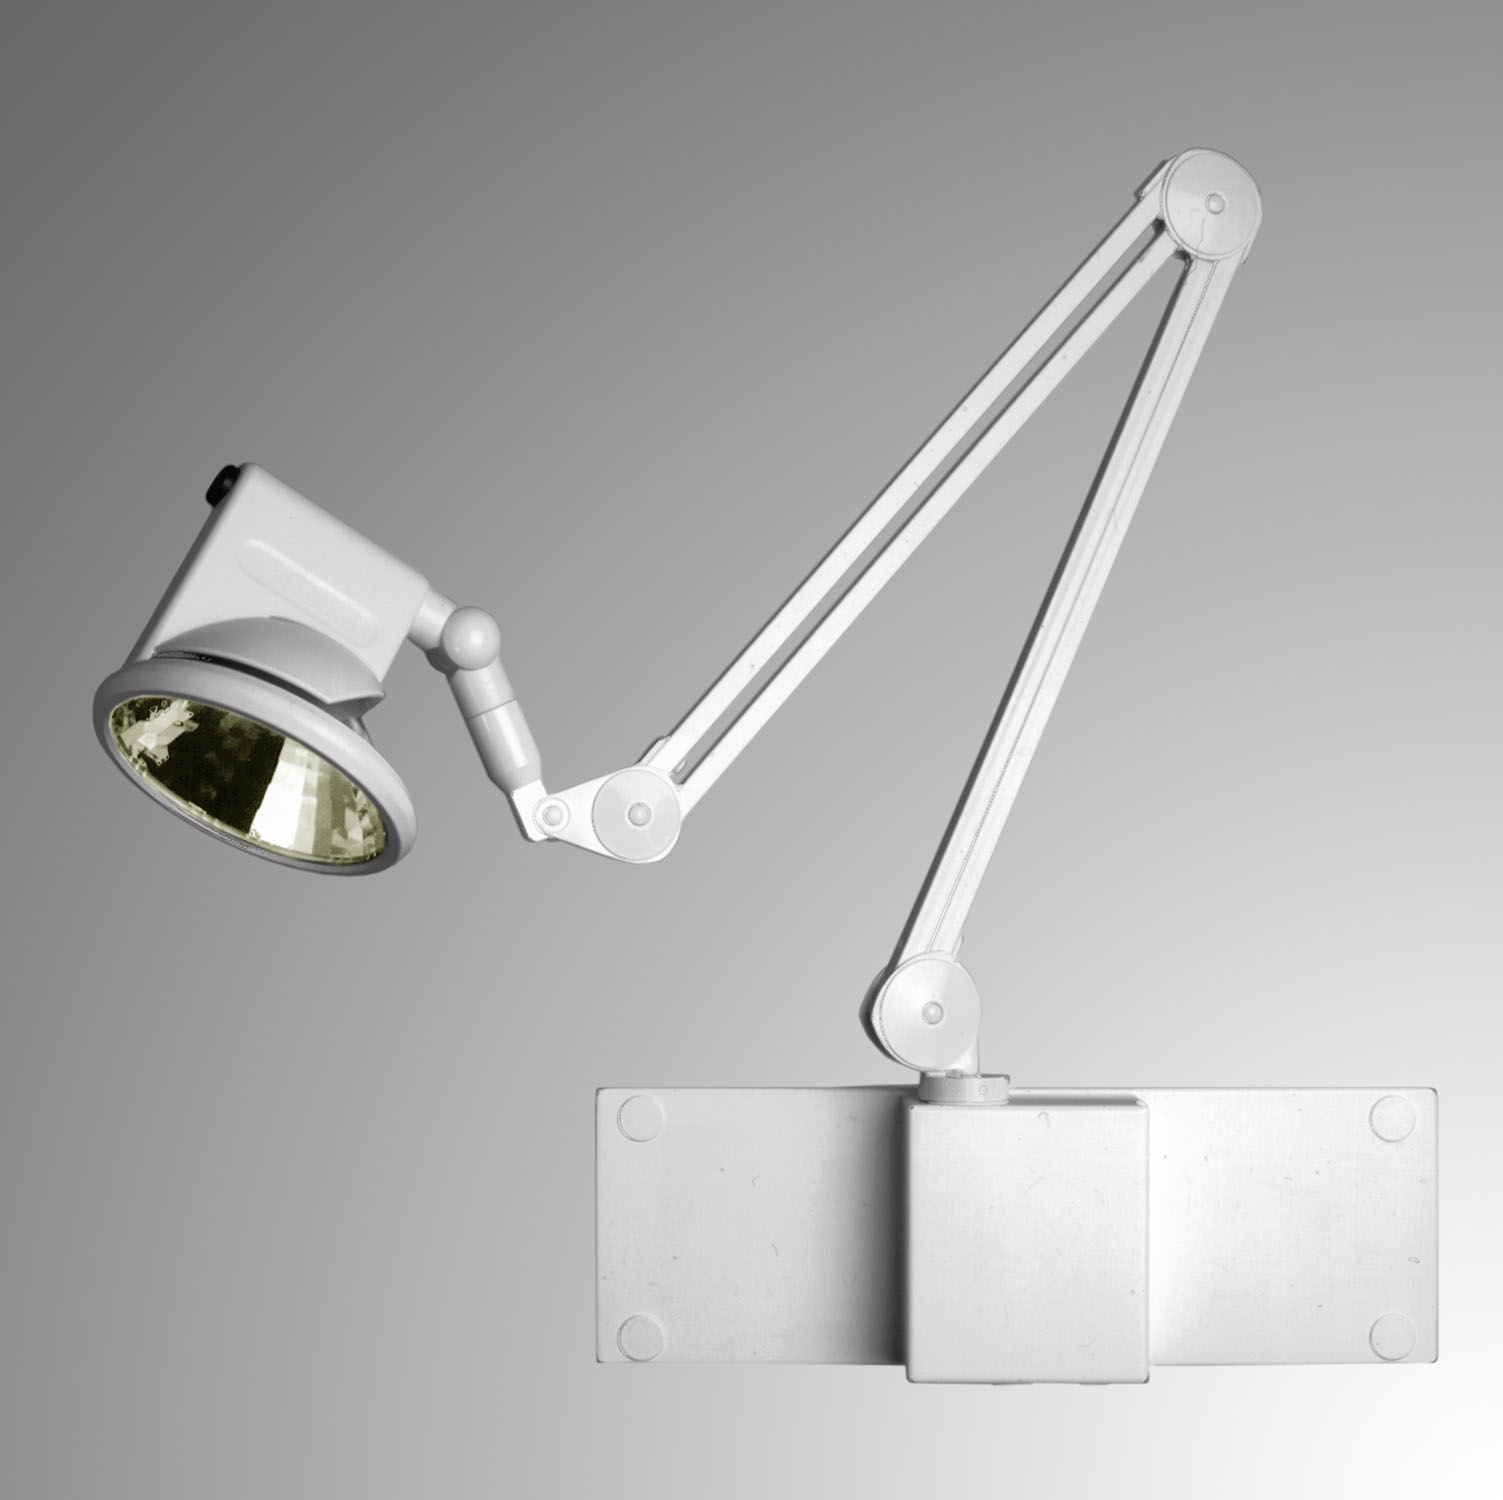 Welcome to meddev multarray table mount exam light aloadofball Image collections